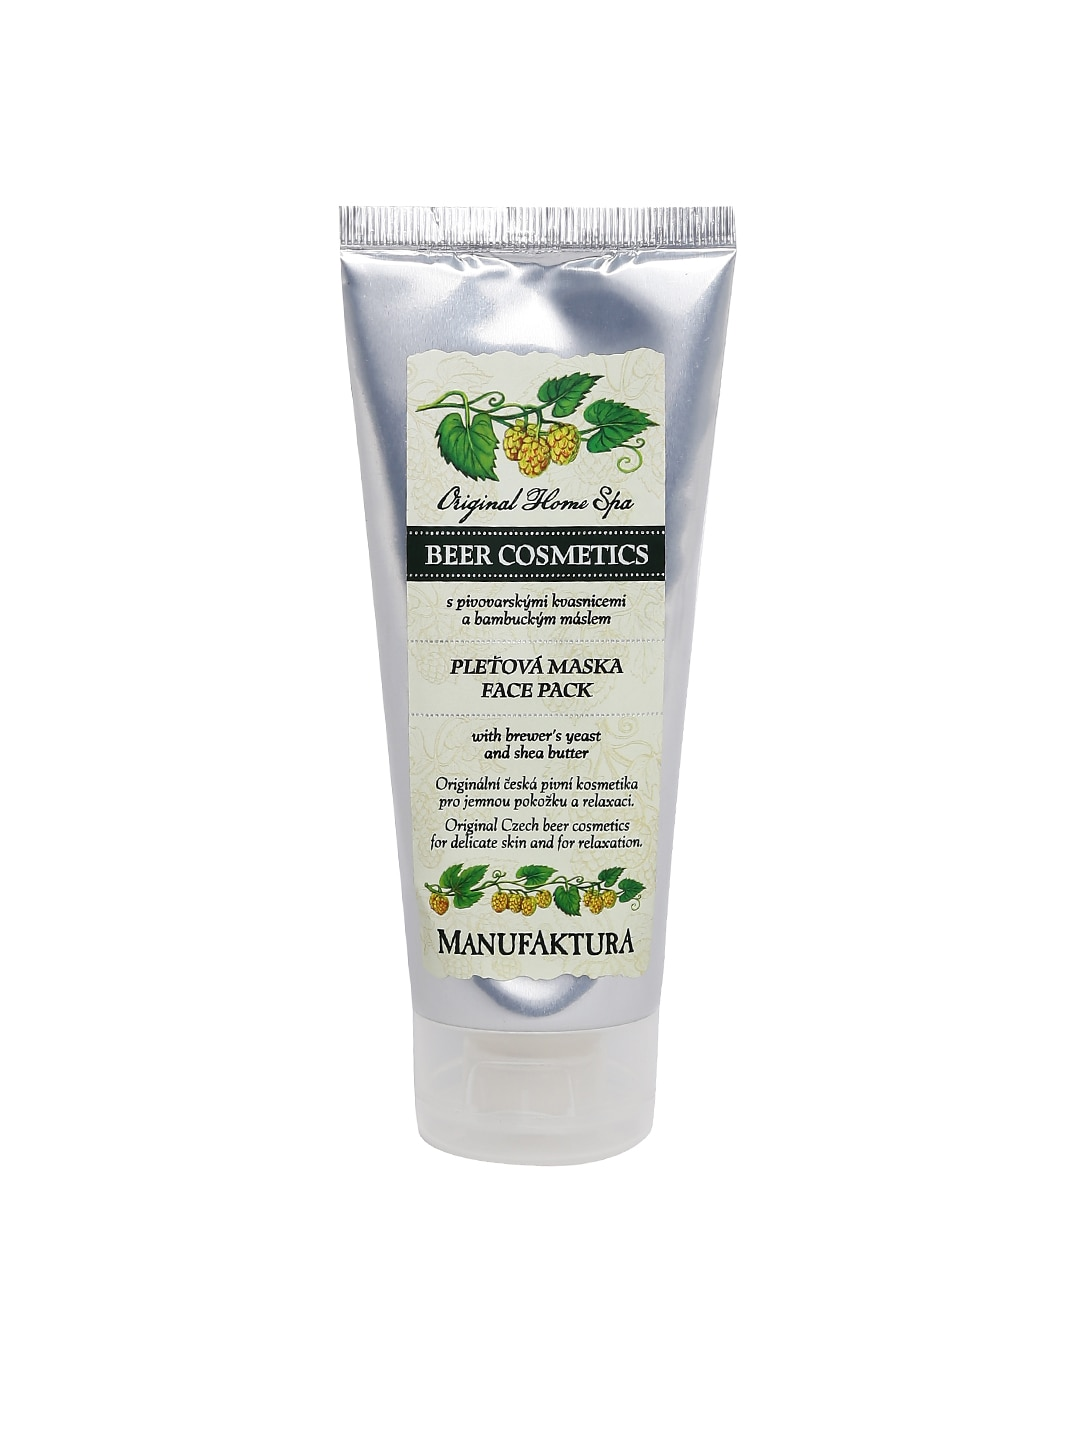 MANUFAKTURA Unisex Beer Spa Face Pack with Shea Butter image